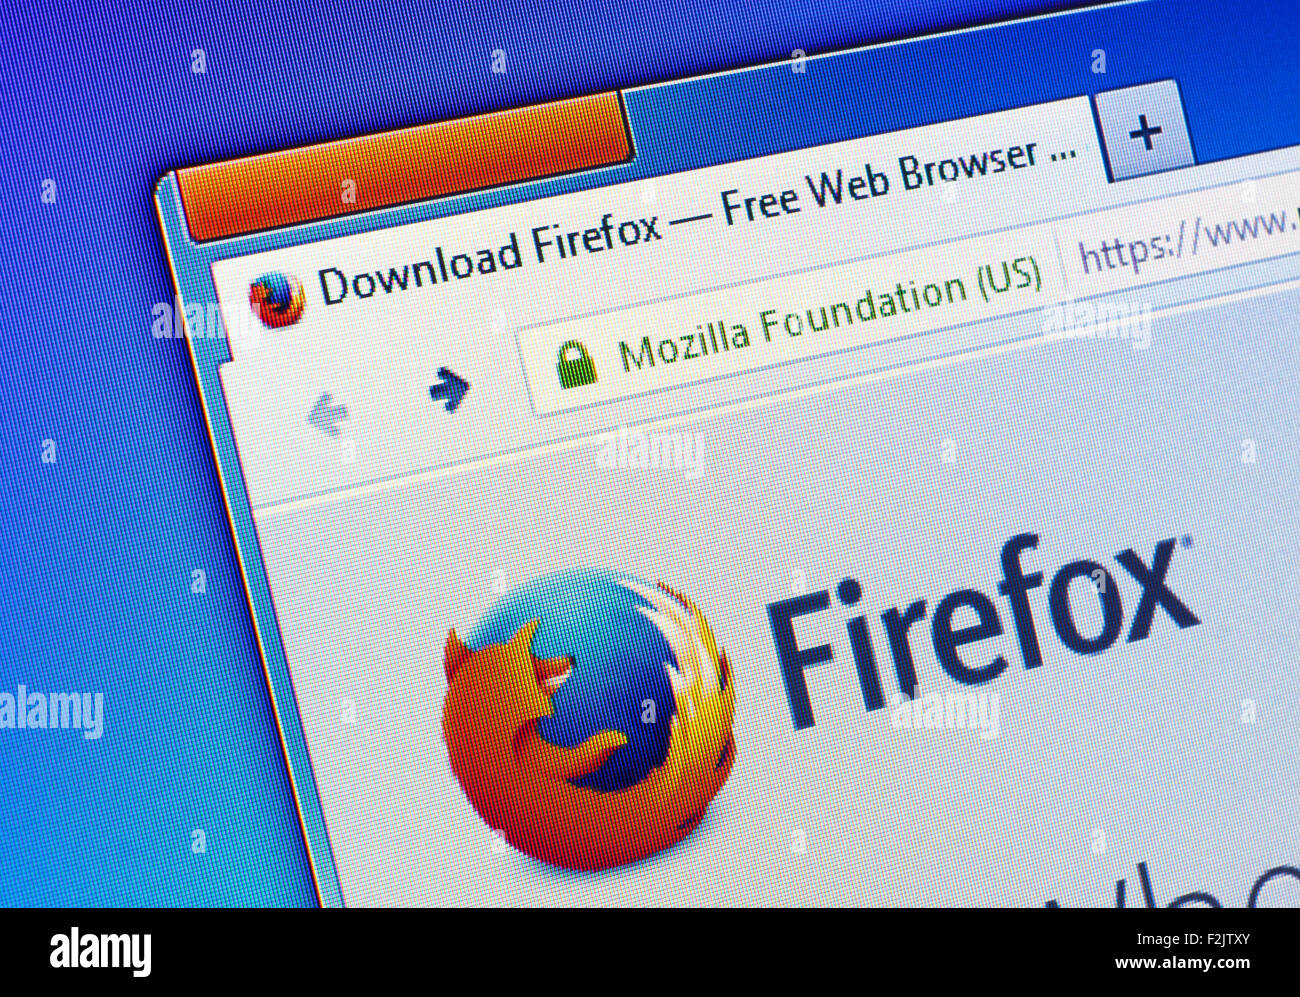 GDANSK, POLAND - JULY 07, 2015. Firefox homepage on computer screen. Mozilla Firefox  is a free and open-source - Stock Image